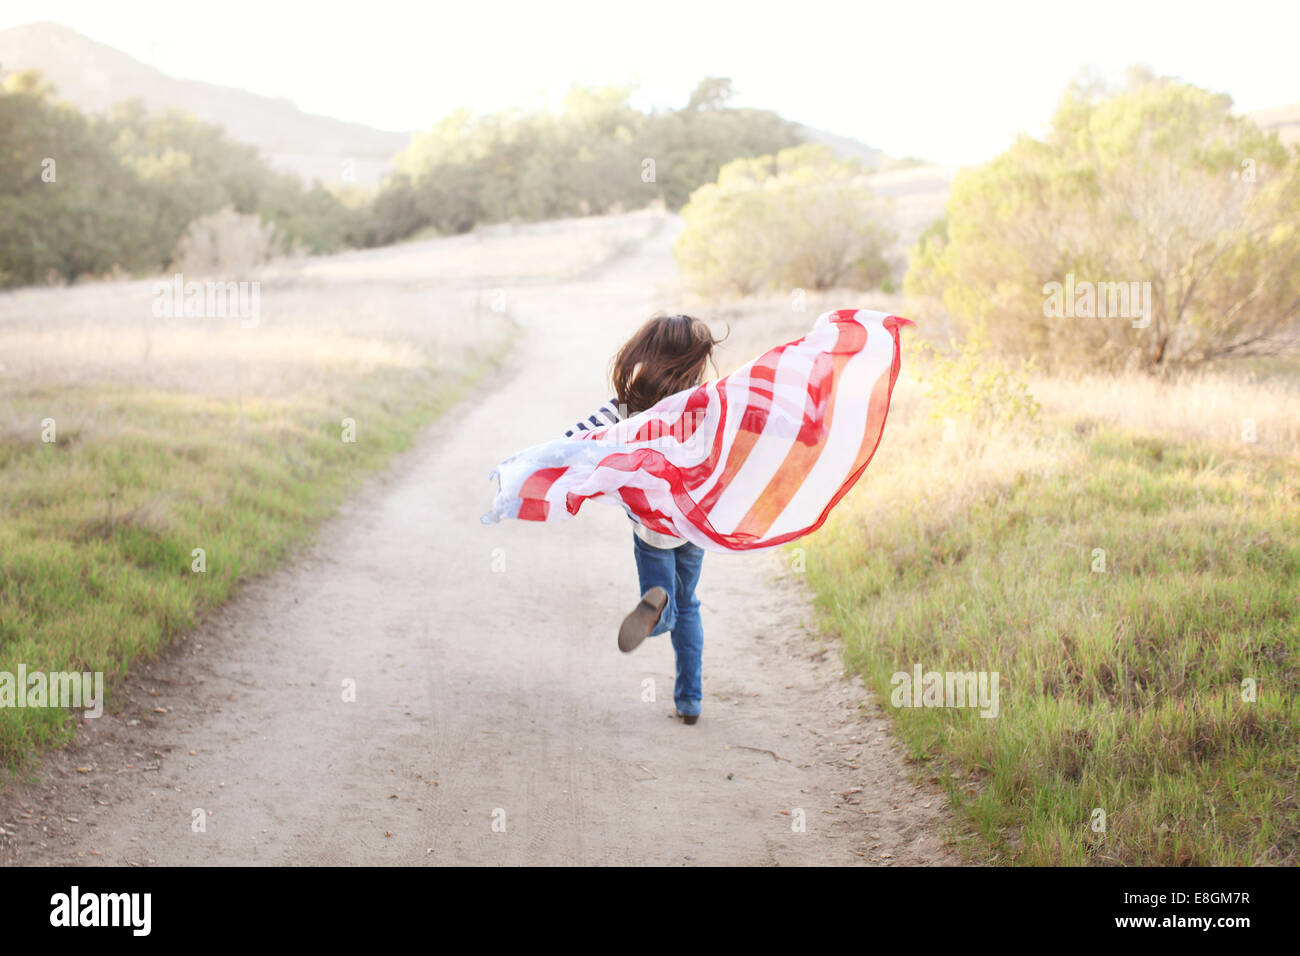 Rear view of Girl running on footpath with American flag - Stock Image